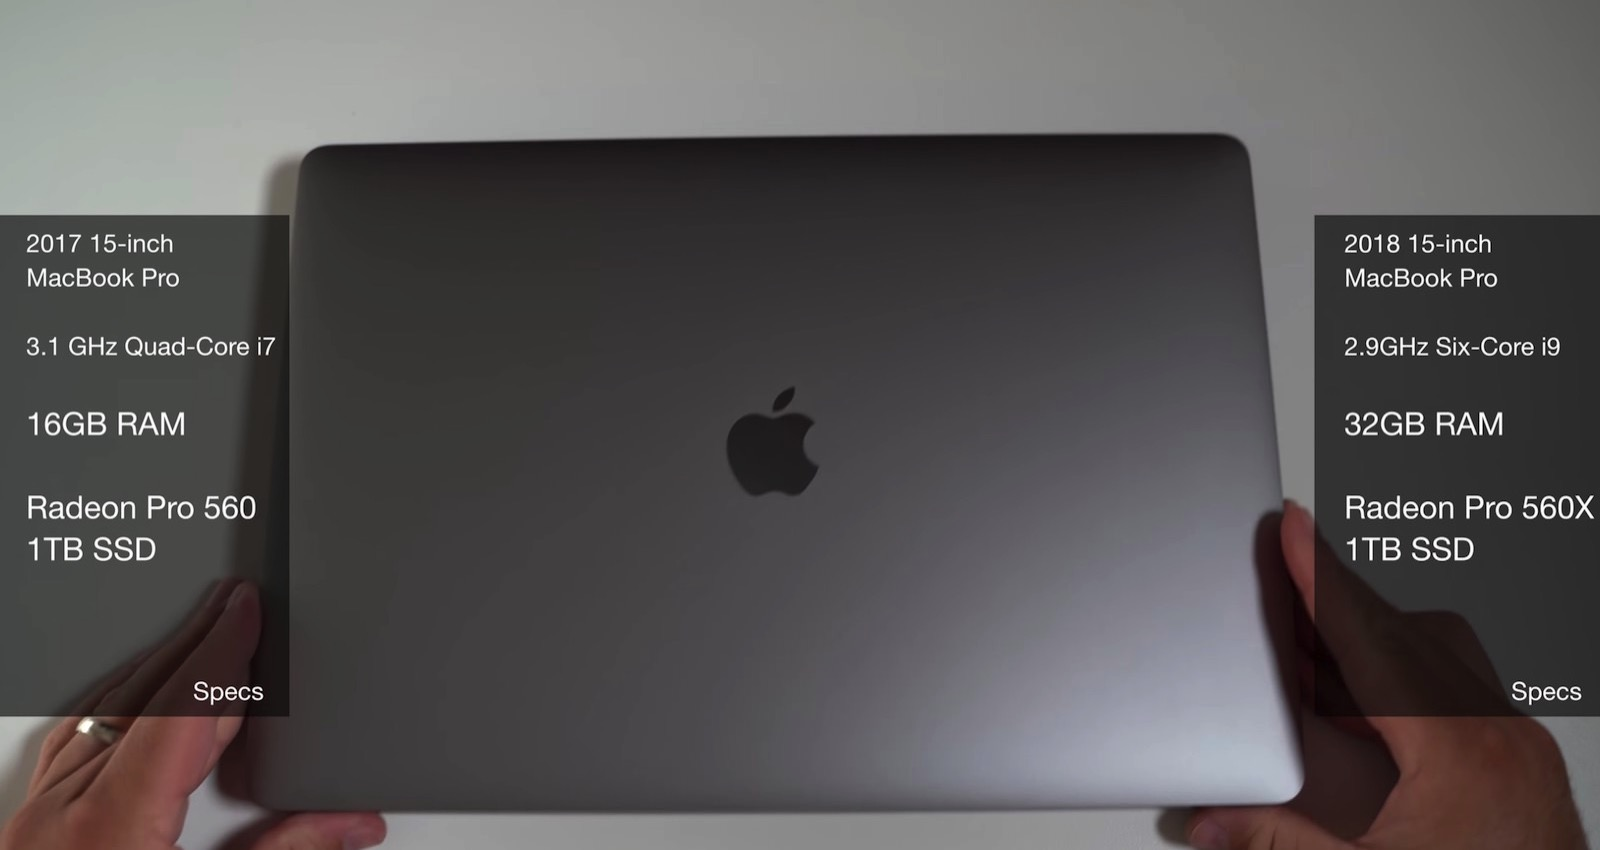 MacBook Pro(2018) 2017 final cut comparison